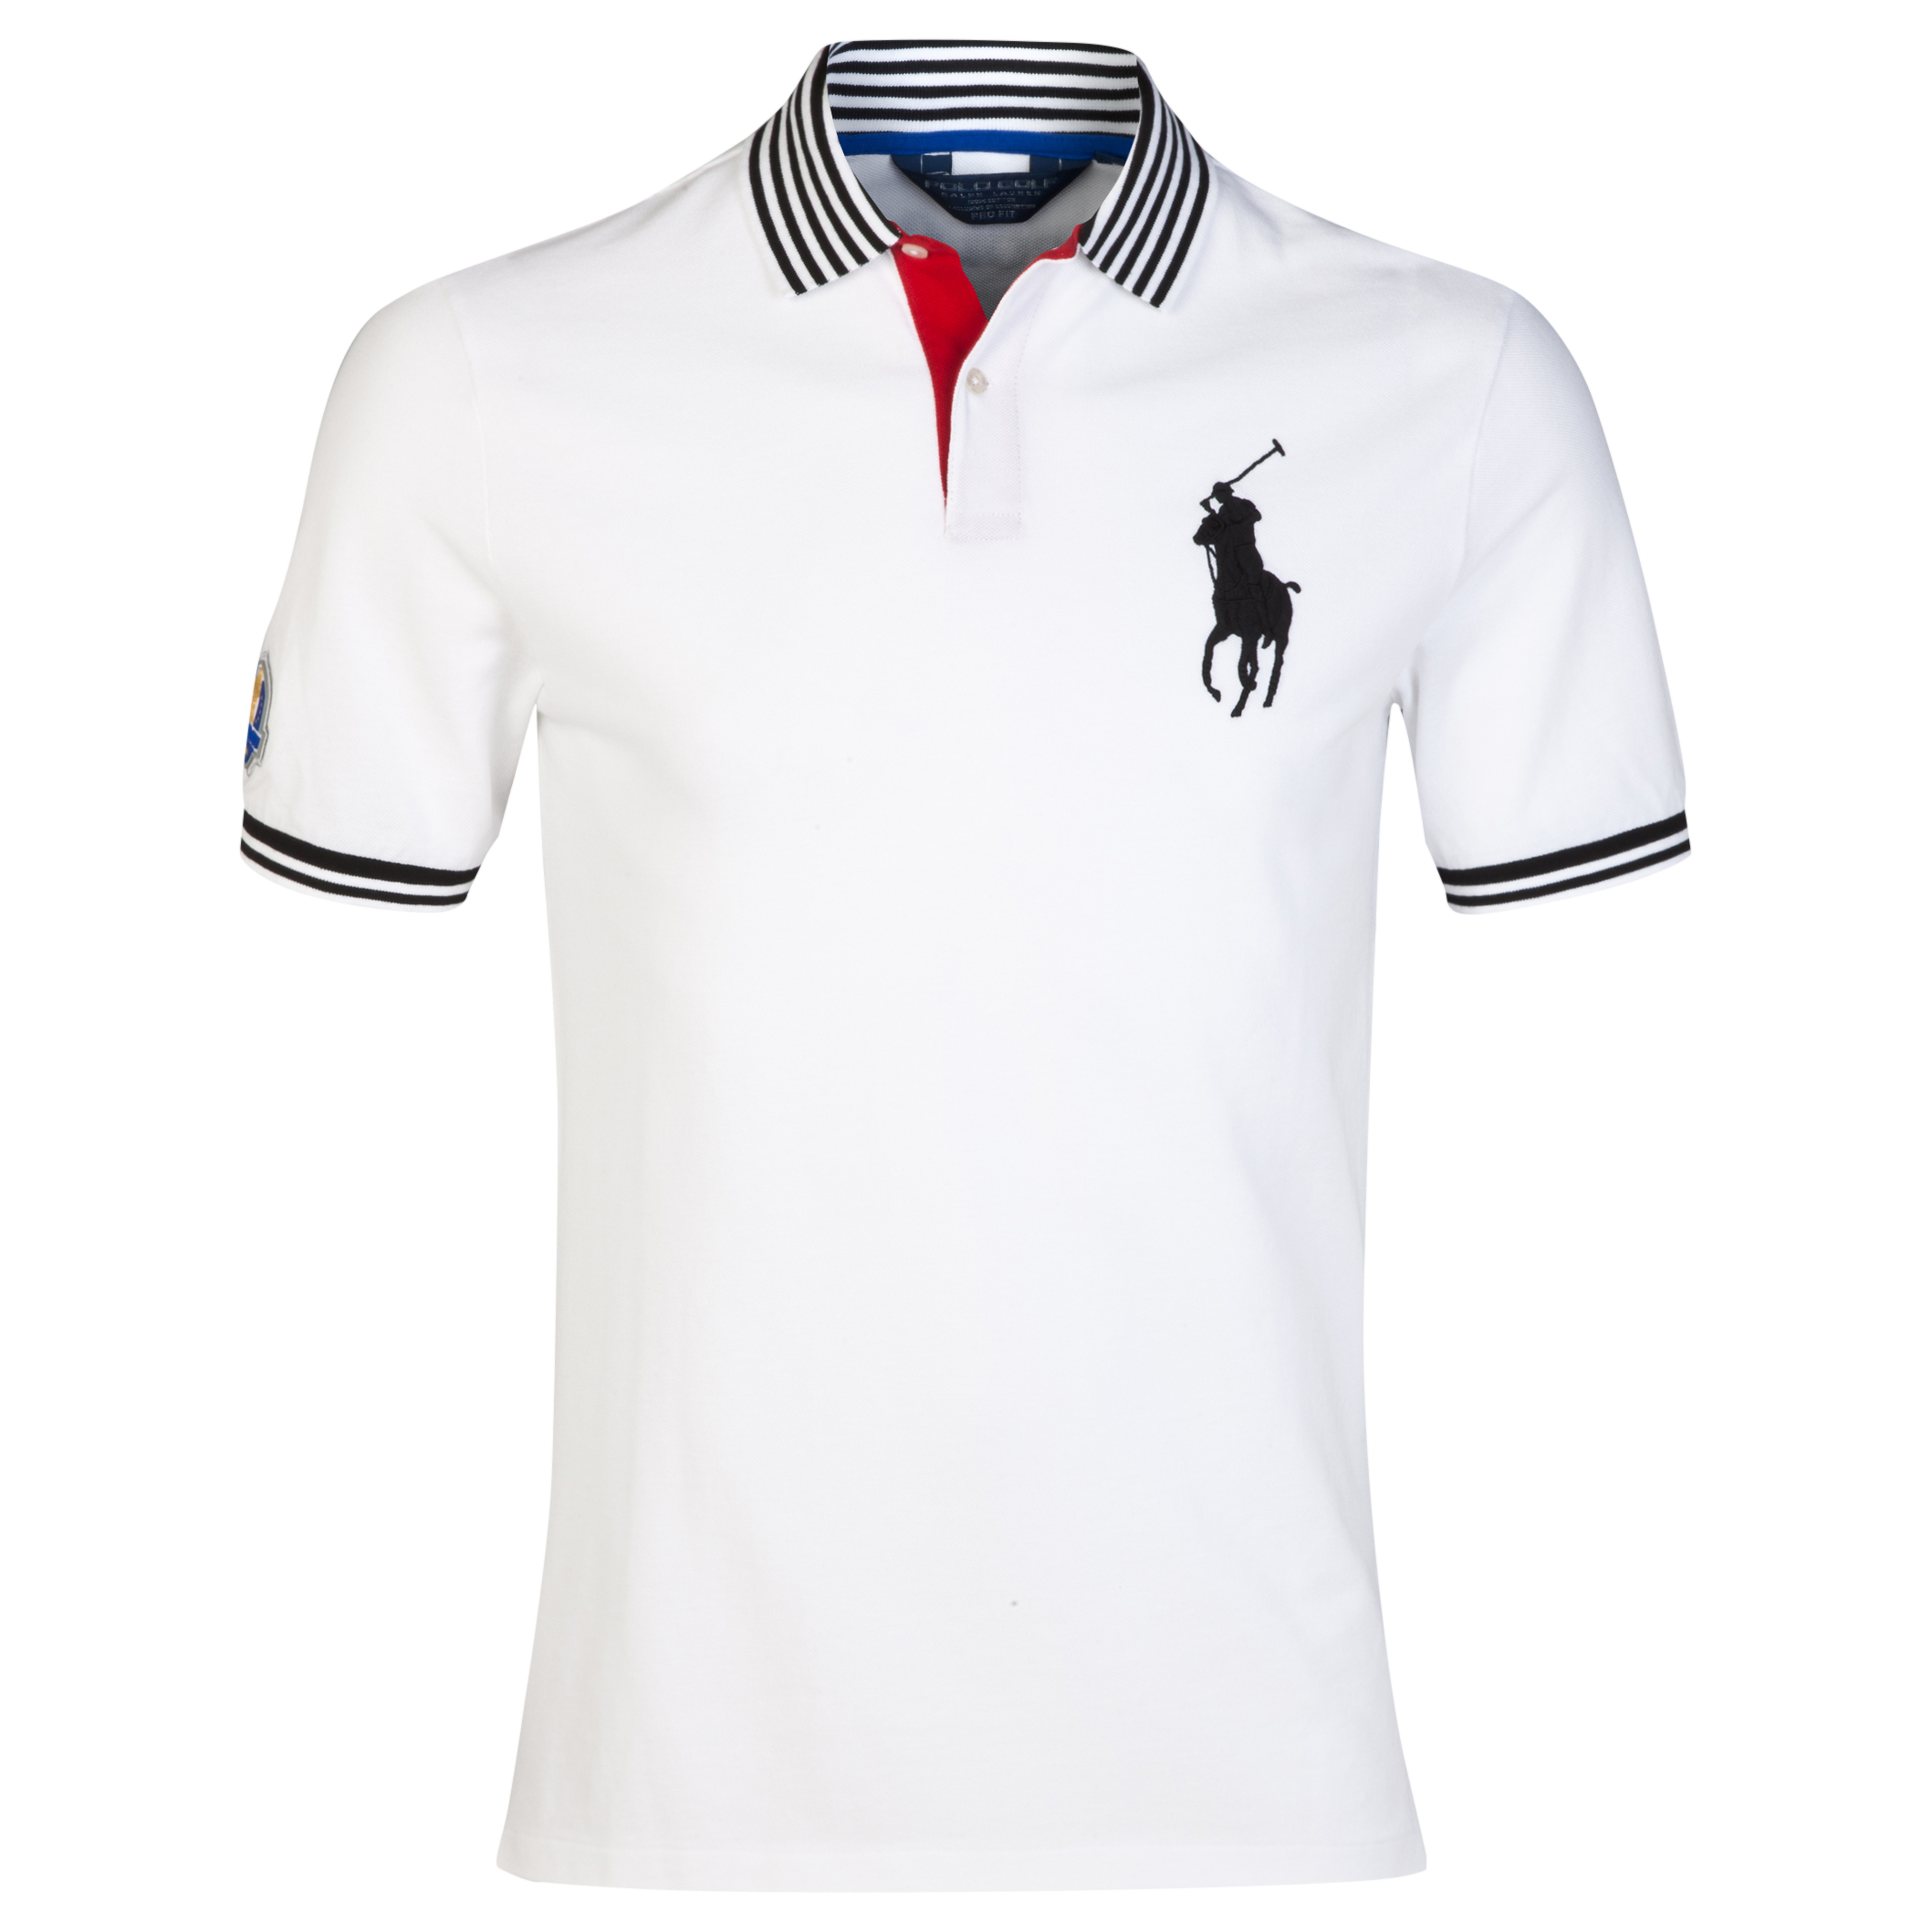 The 2014 Ryder Cup Ralph Lauren Big Pony Contrast Collar Polo White